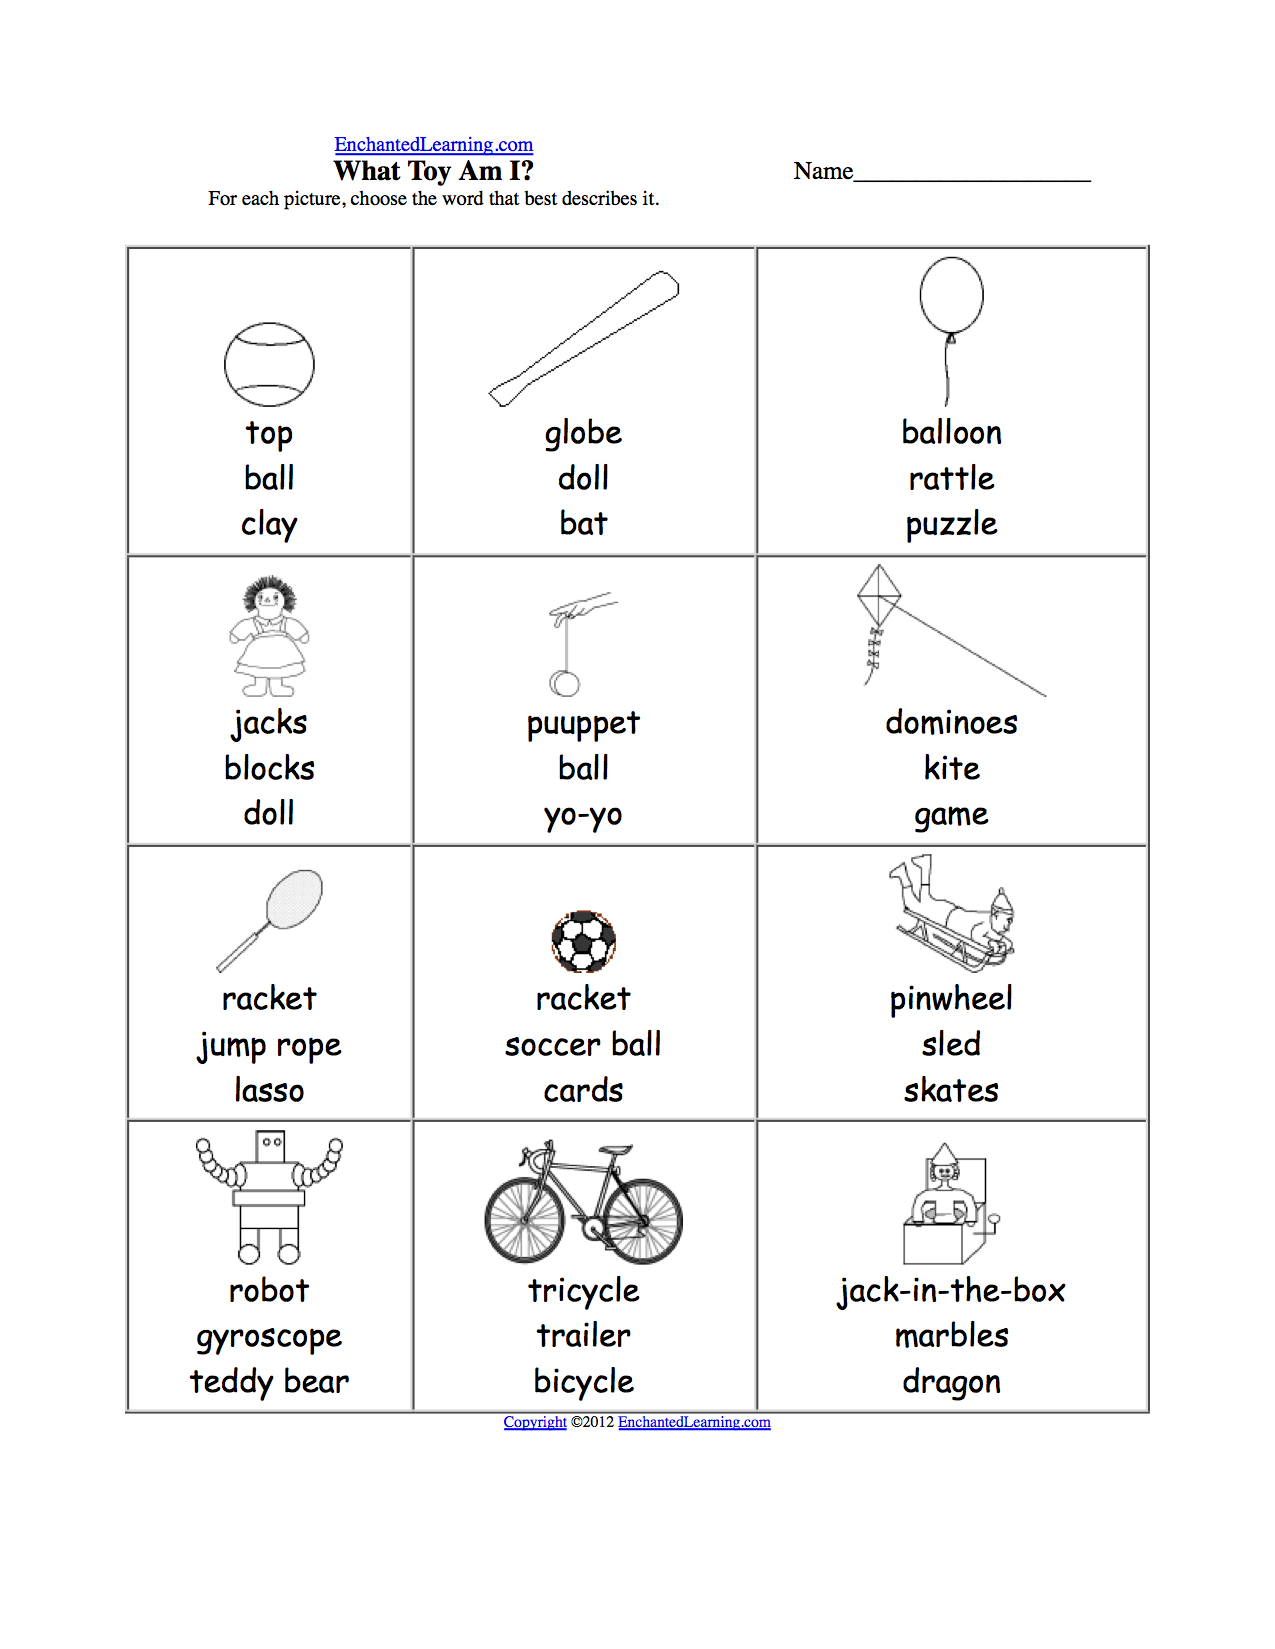 worksheet Sports Worksheets sports at enchantedlearning com what toy am i for each choose the word that best describes it or go to answers